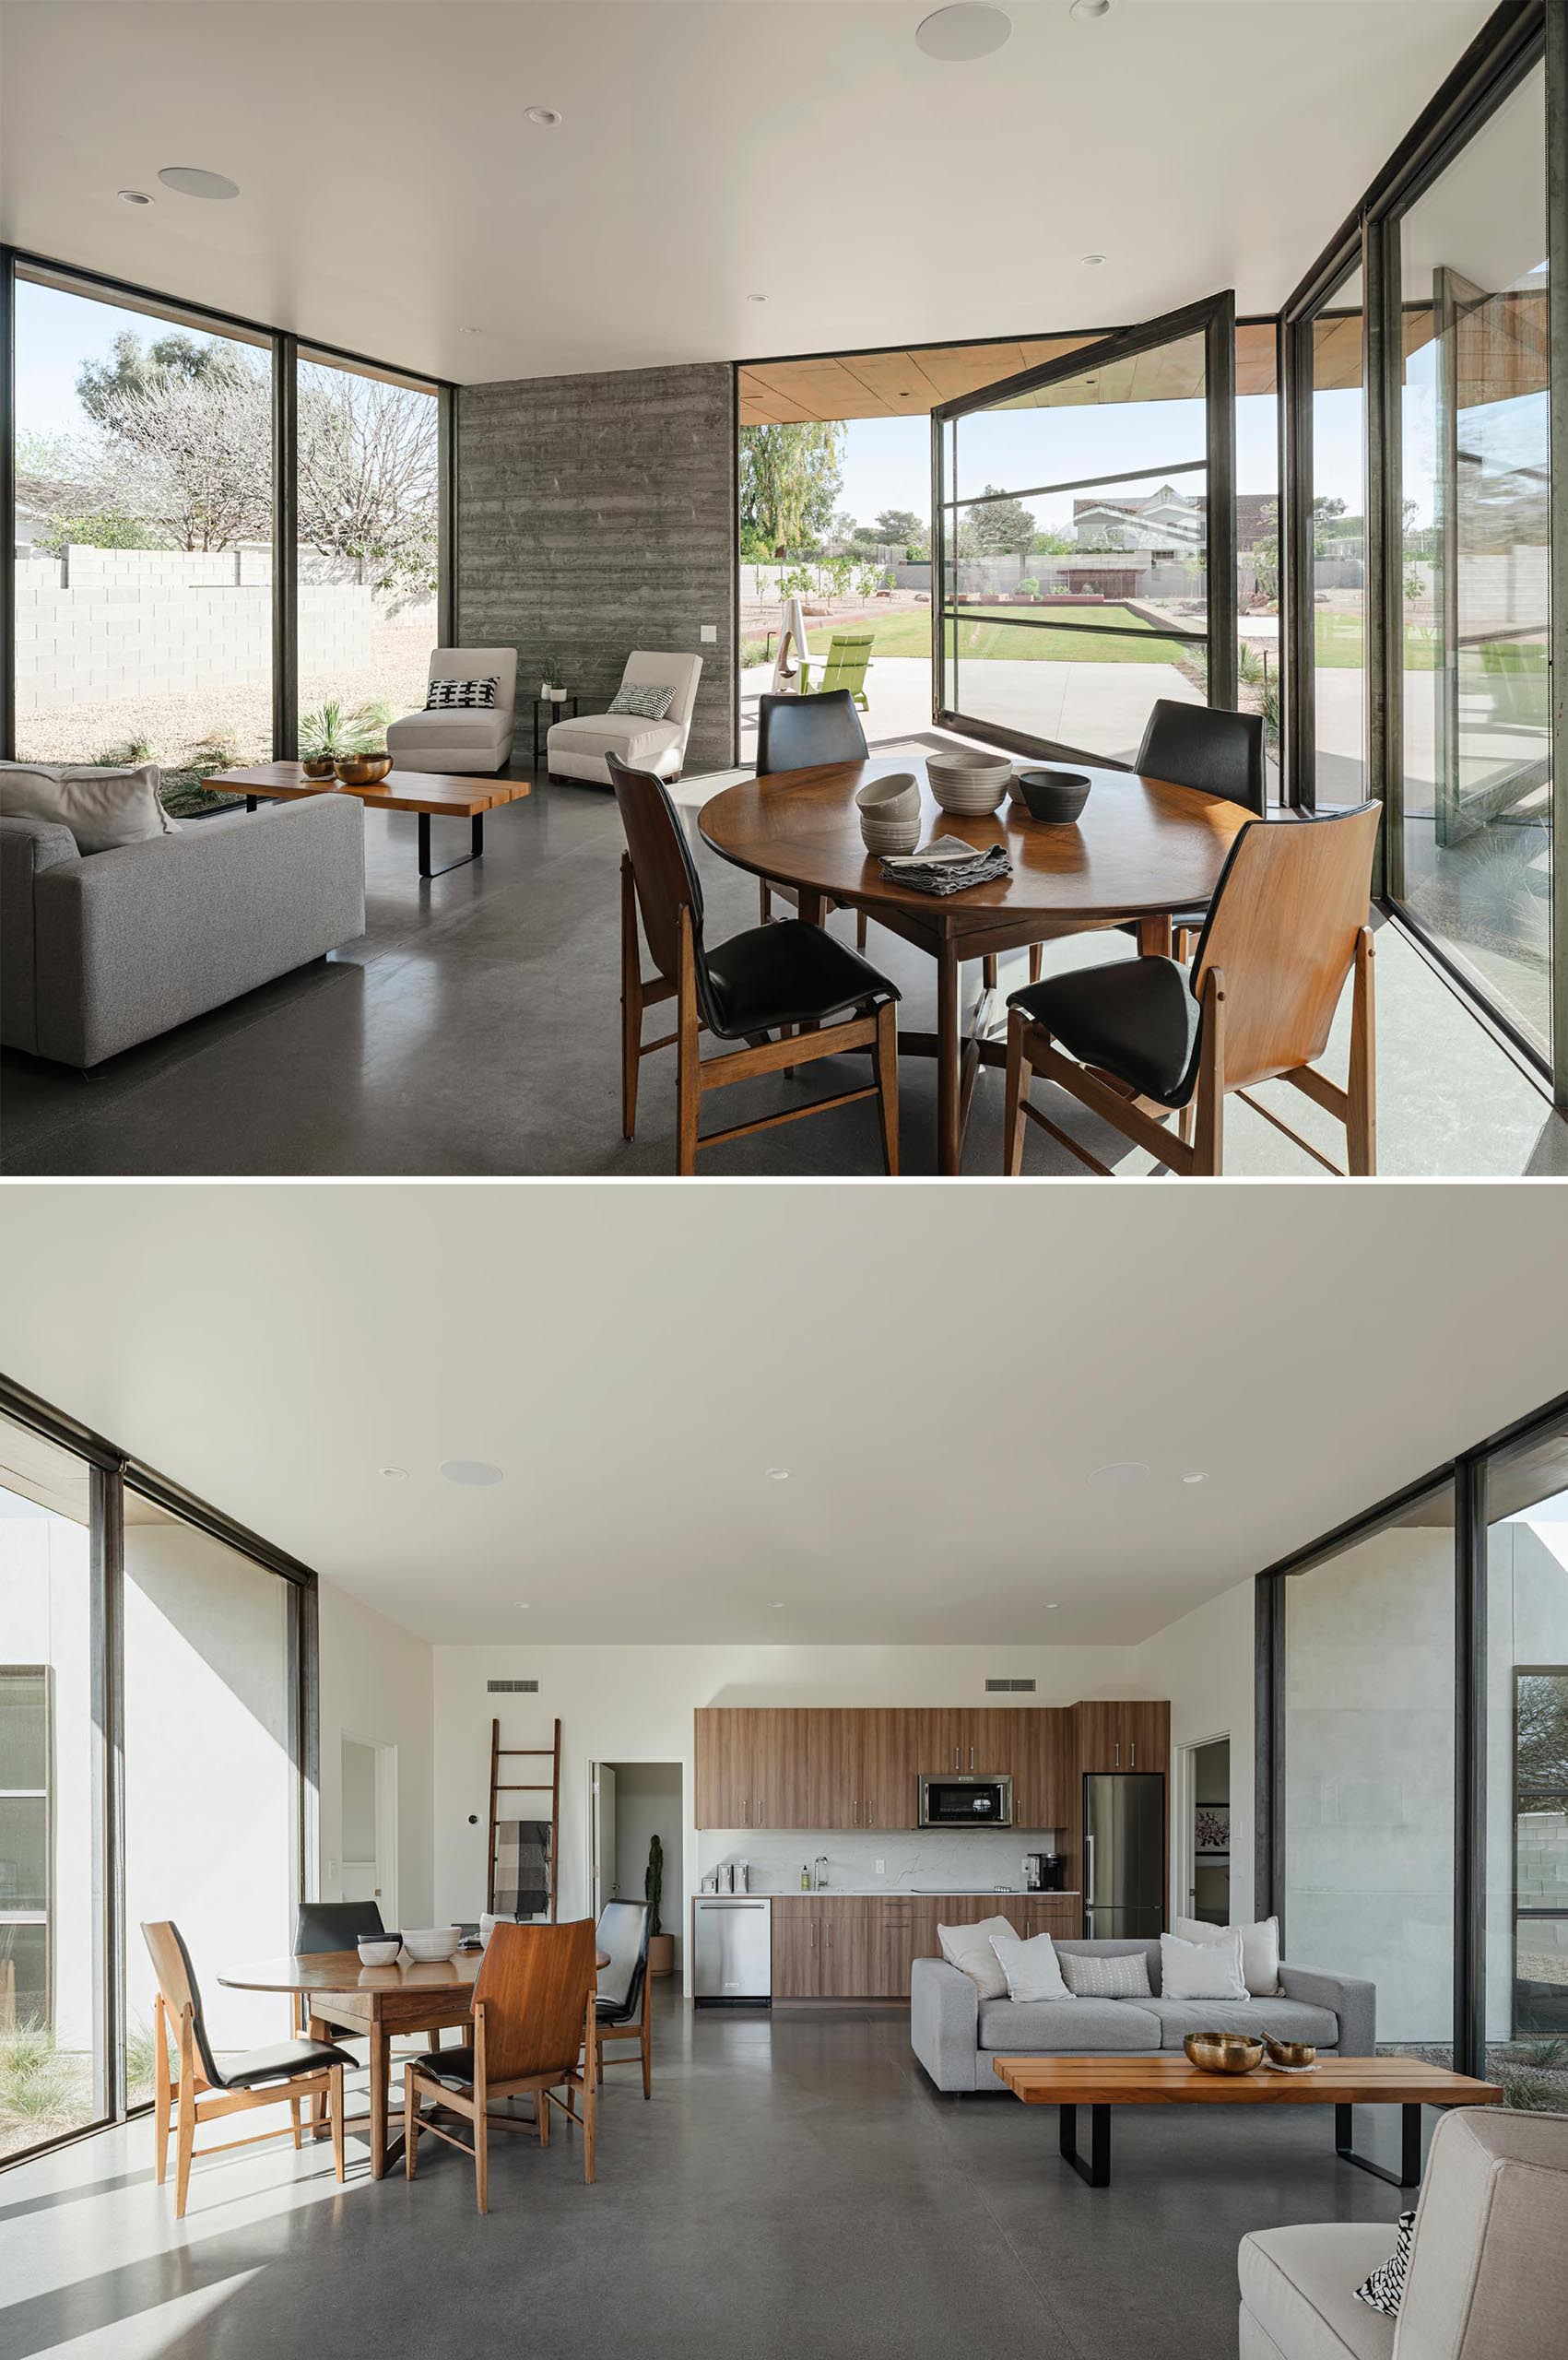 An open plan living room, dining area, and kitchen, with polished concrete floors and a large pivoting door.